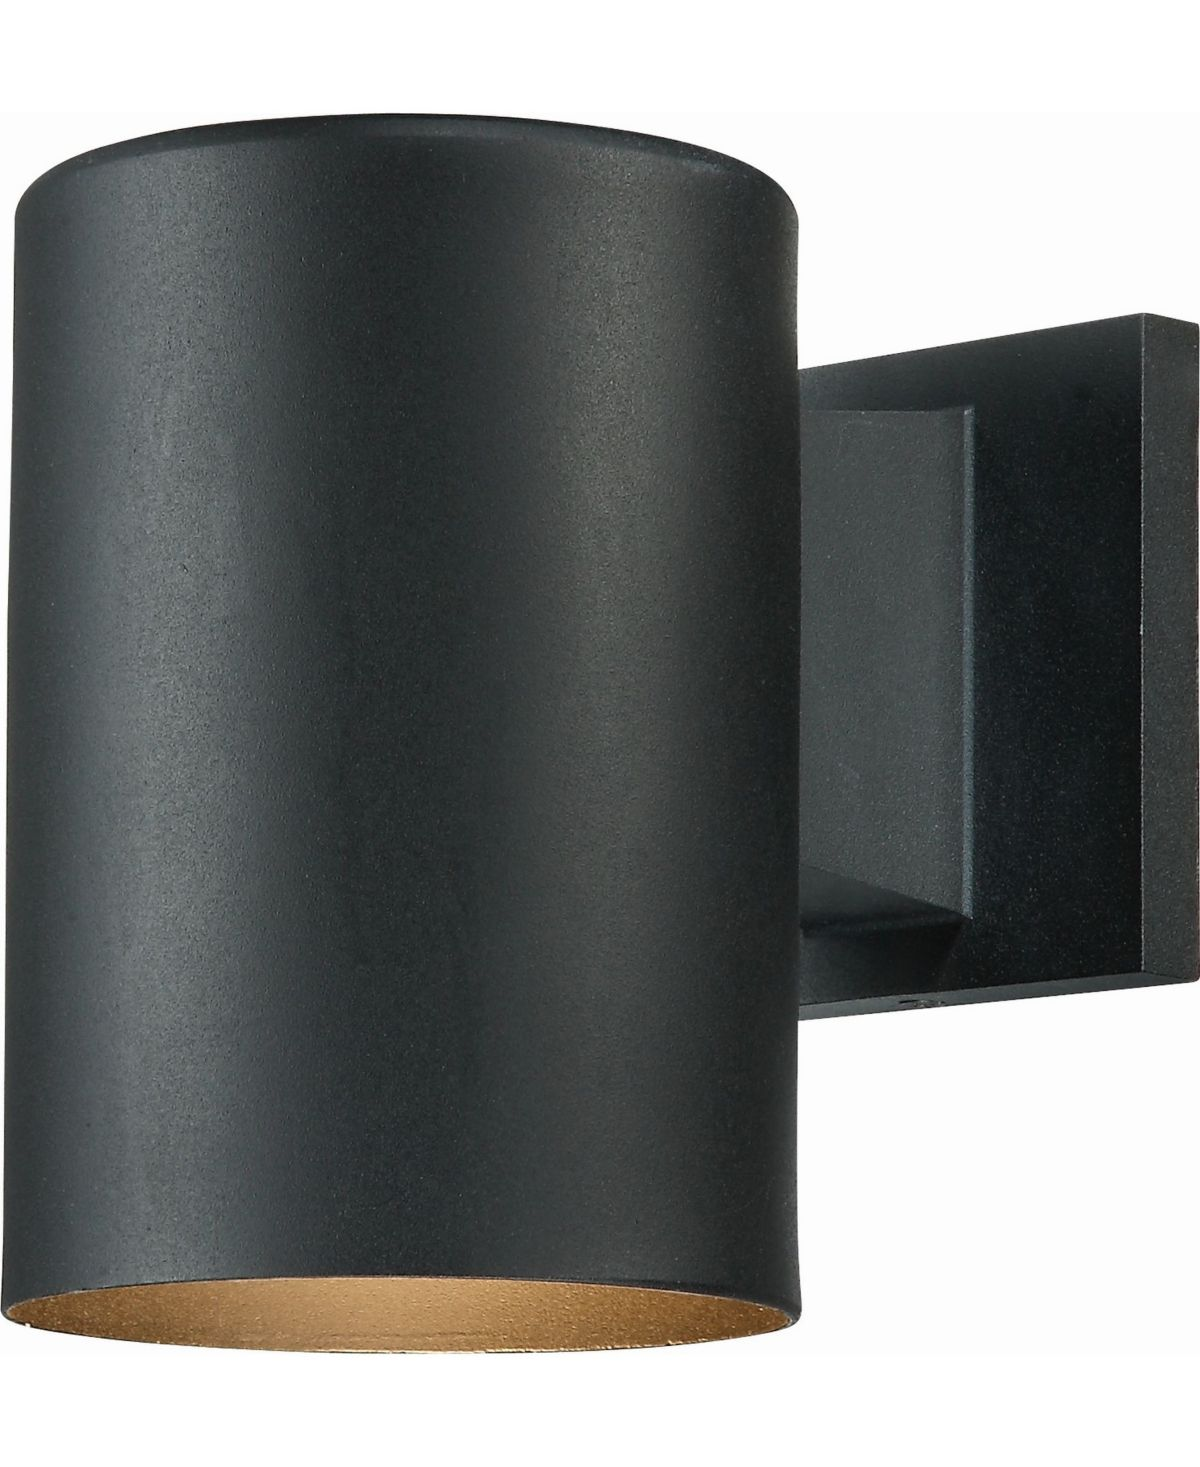 Volume Lighting 1 Light Cylinder Wall Sconce Reviews Home Macy S Black Outdoor Wall Lights Outdoor Wall Lighting Outdoor Sconces